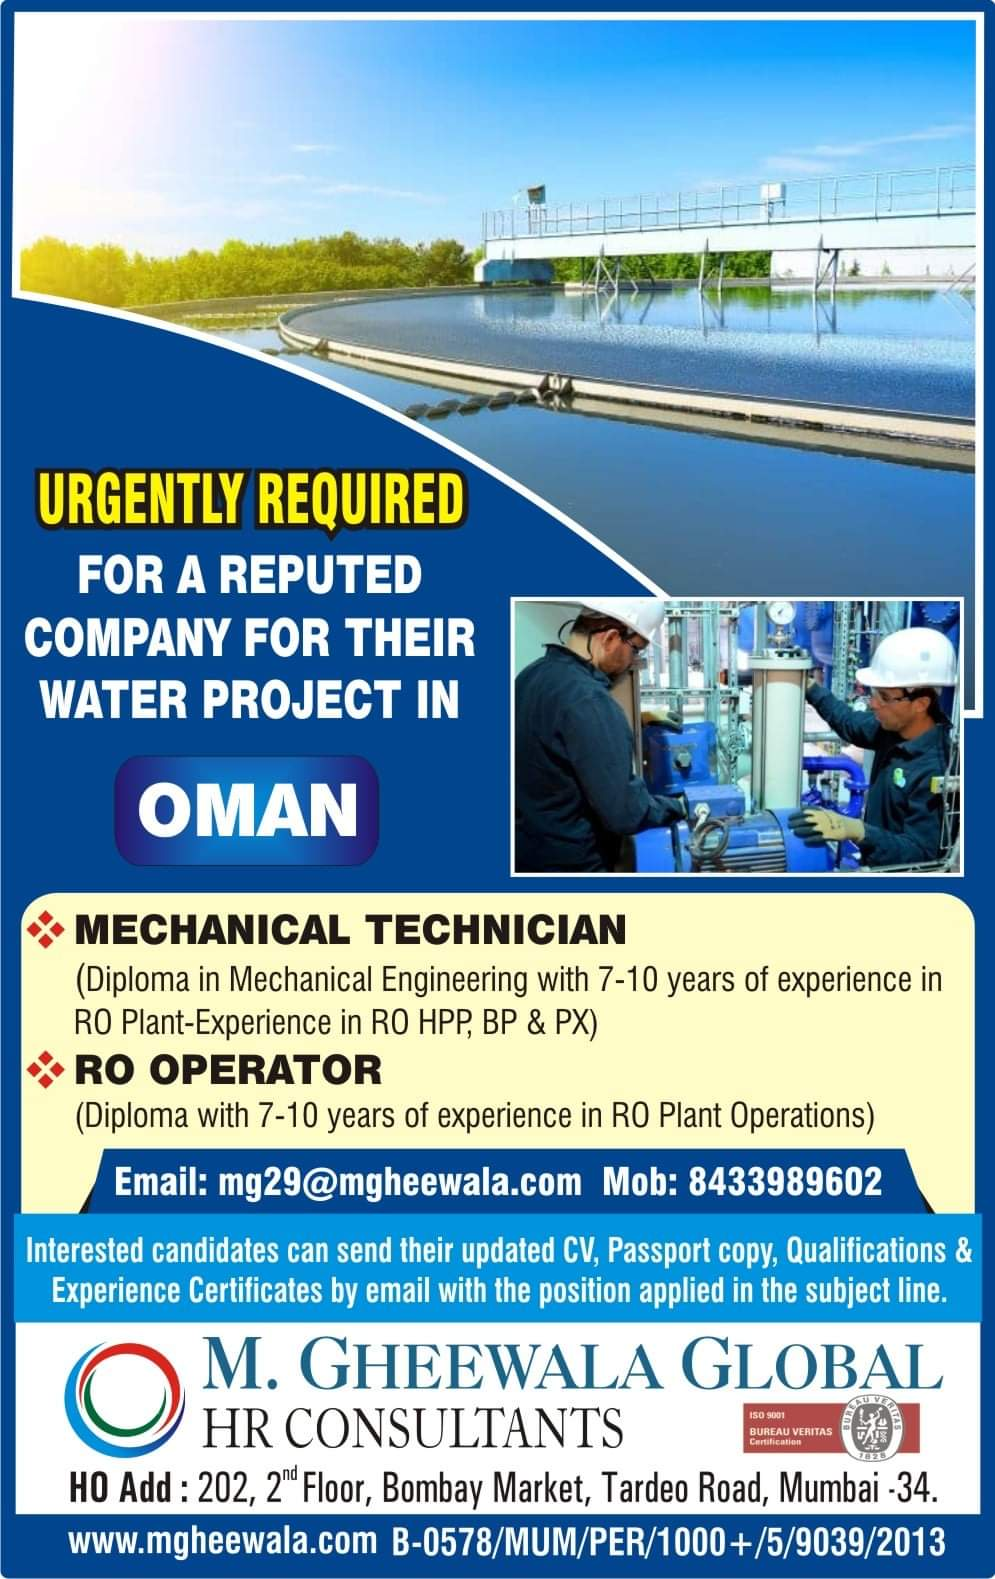 URGENTLY REQUIRED FOR A REPUTED COMPANY FOR THEIR WATER PROJECT IN OMAN